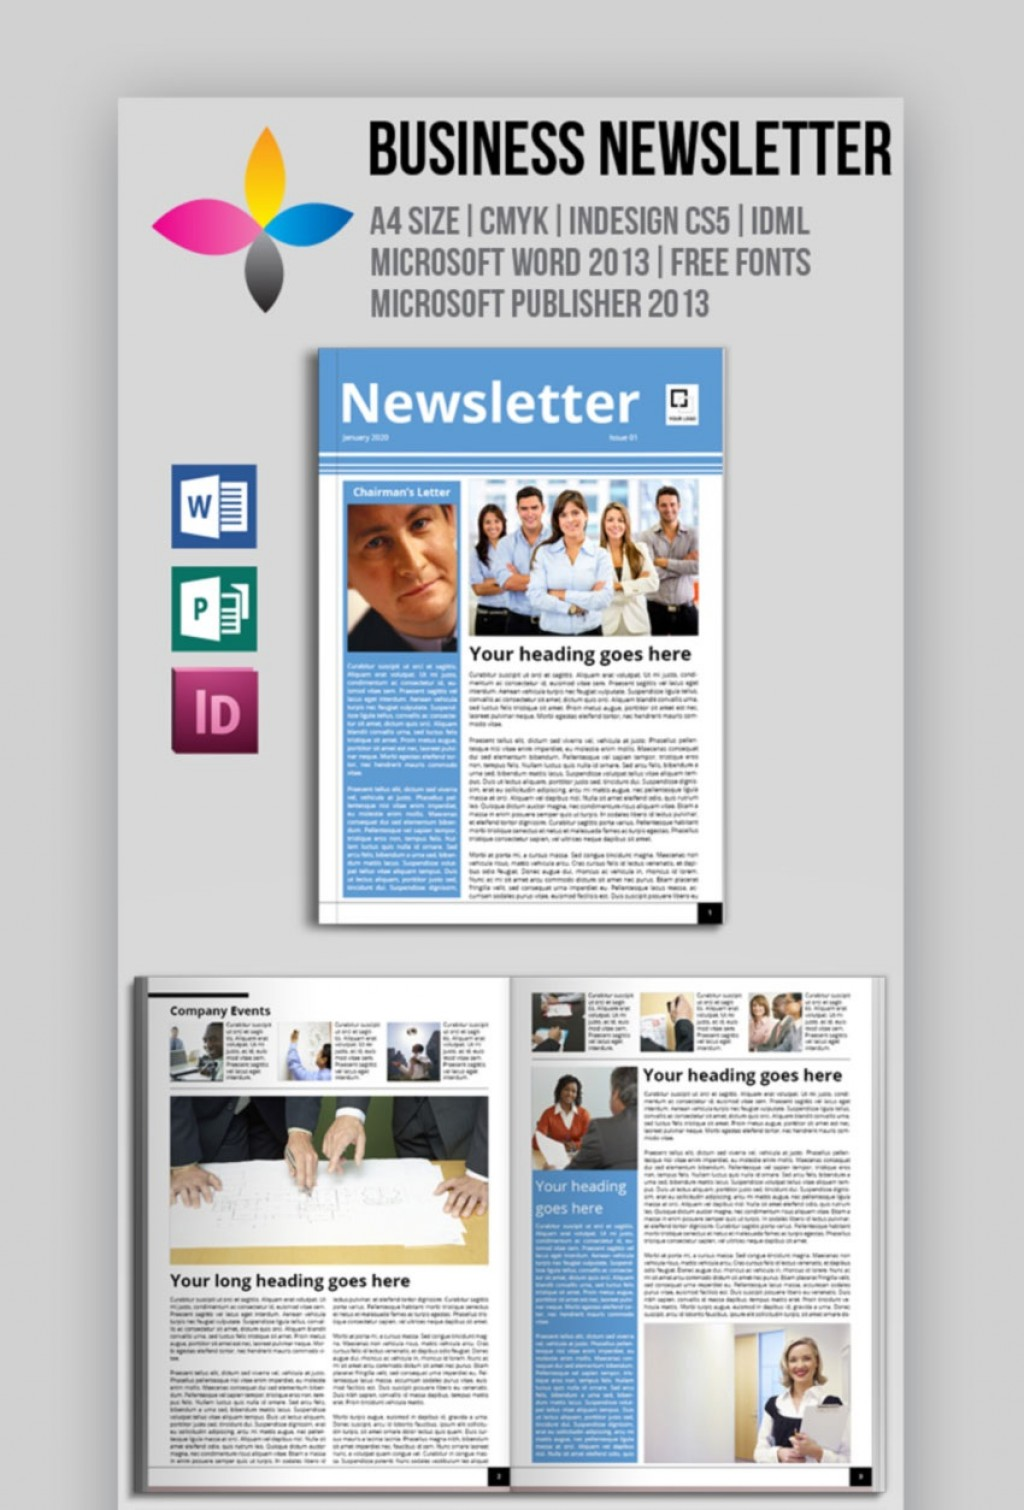 004 Top M Word Newsletter Template Idea  Free Microsoft Format ExampleLarge